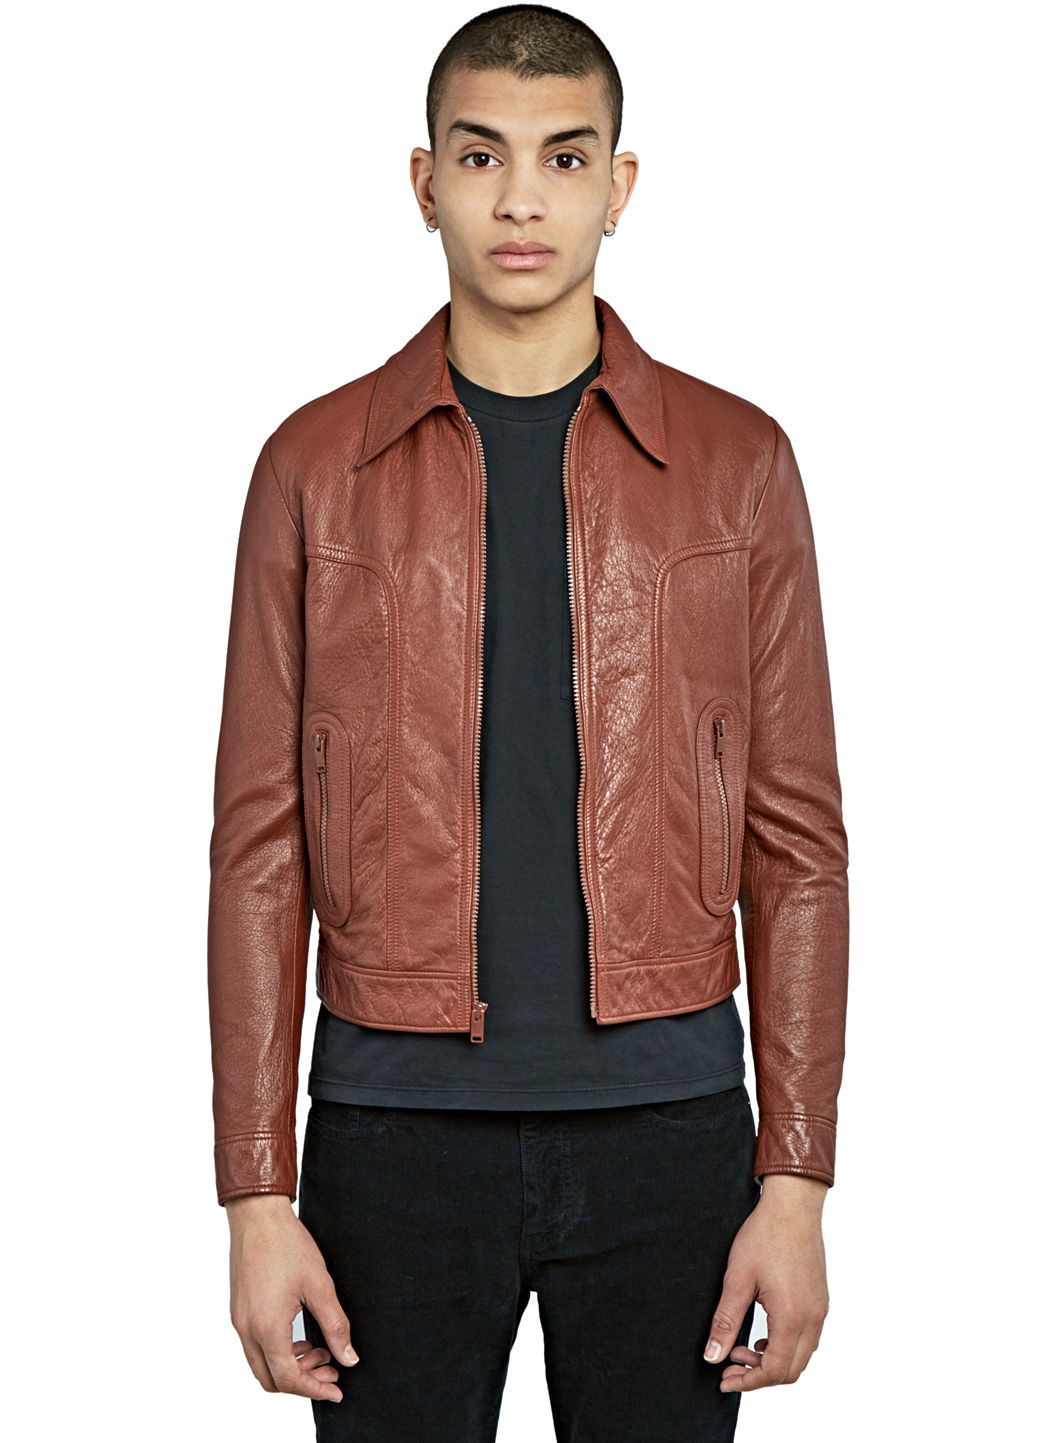 Saint Laurent MenS 70S Leather Jacket In Brown